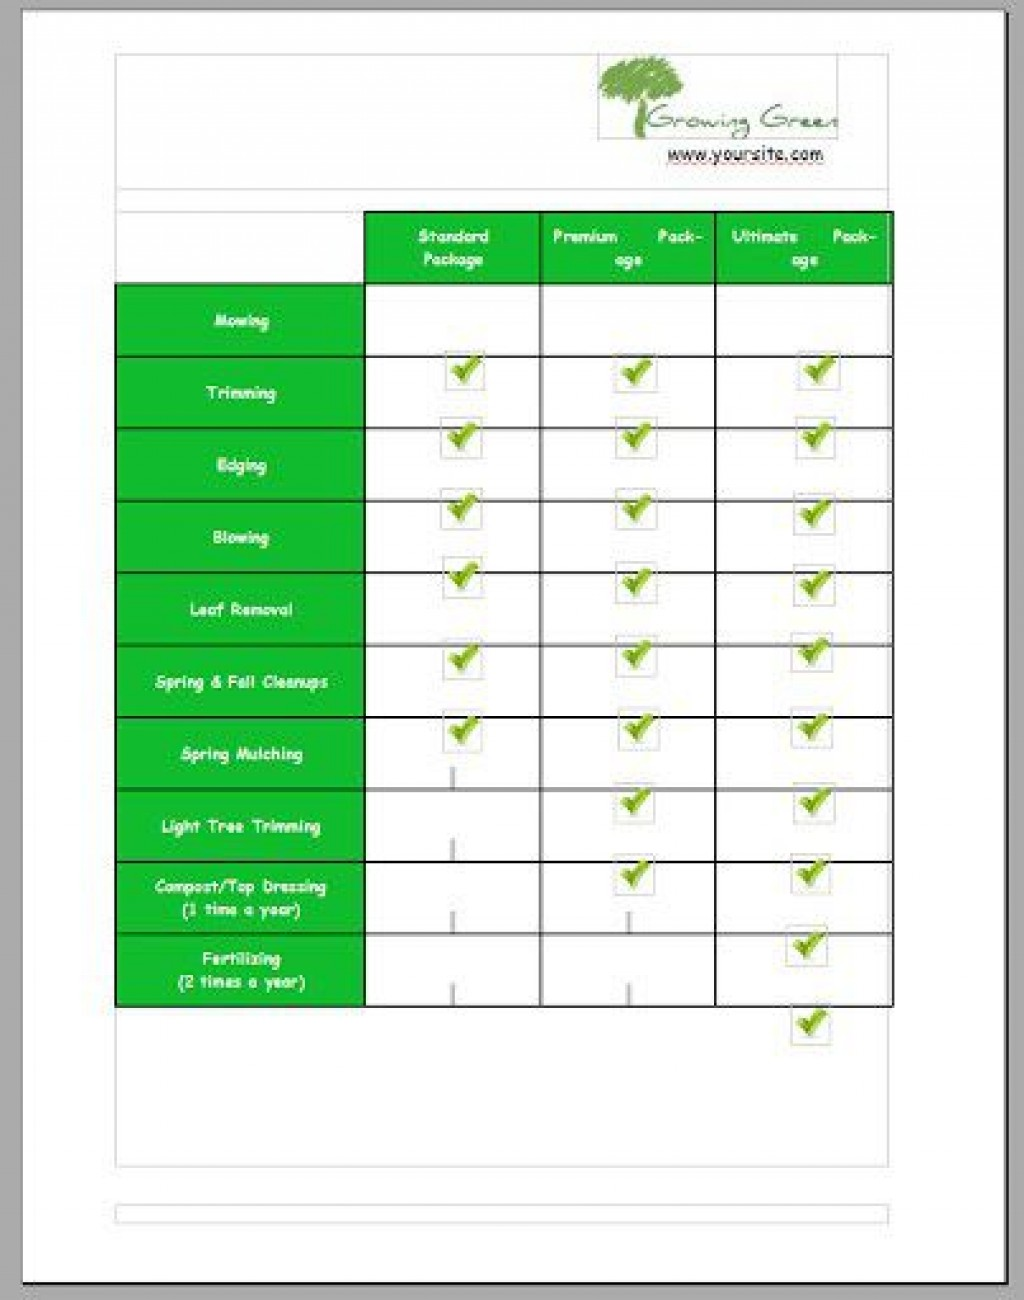 009 Amazing Commercial Lawn Care Bid Template Sample Large